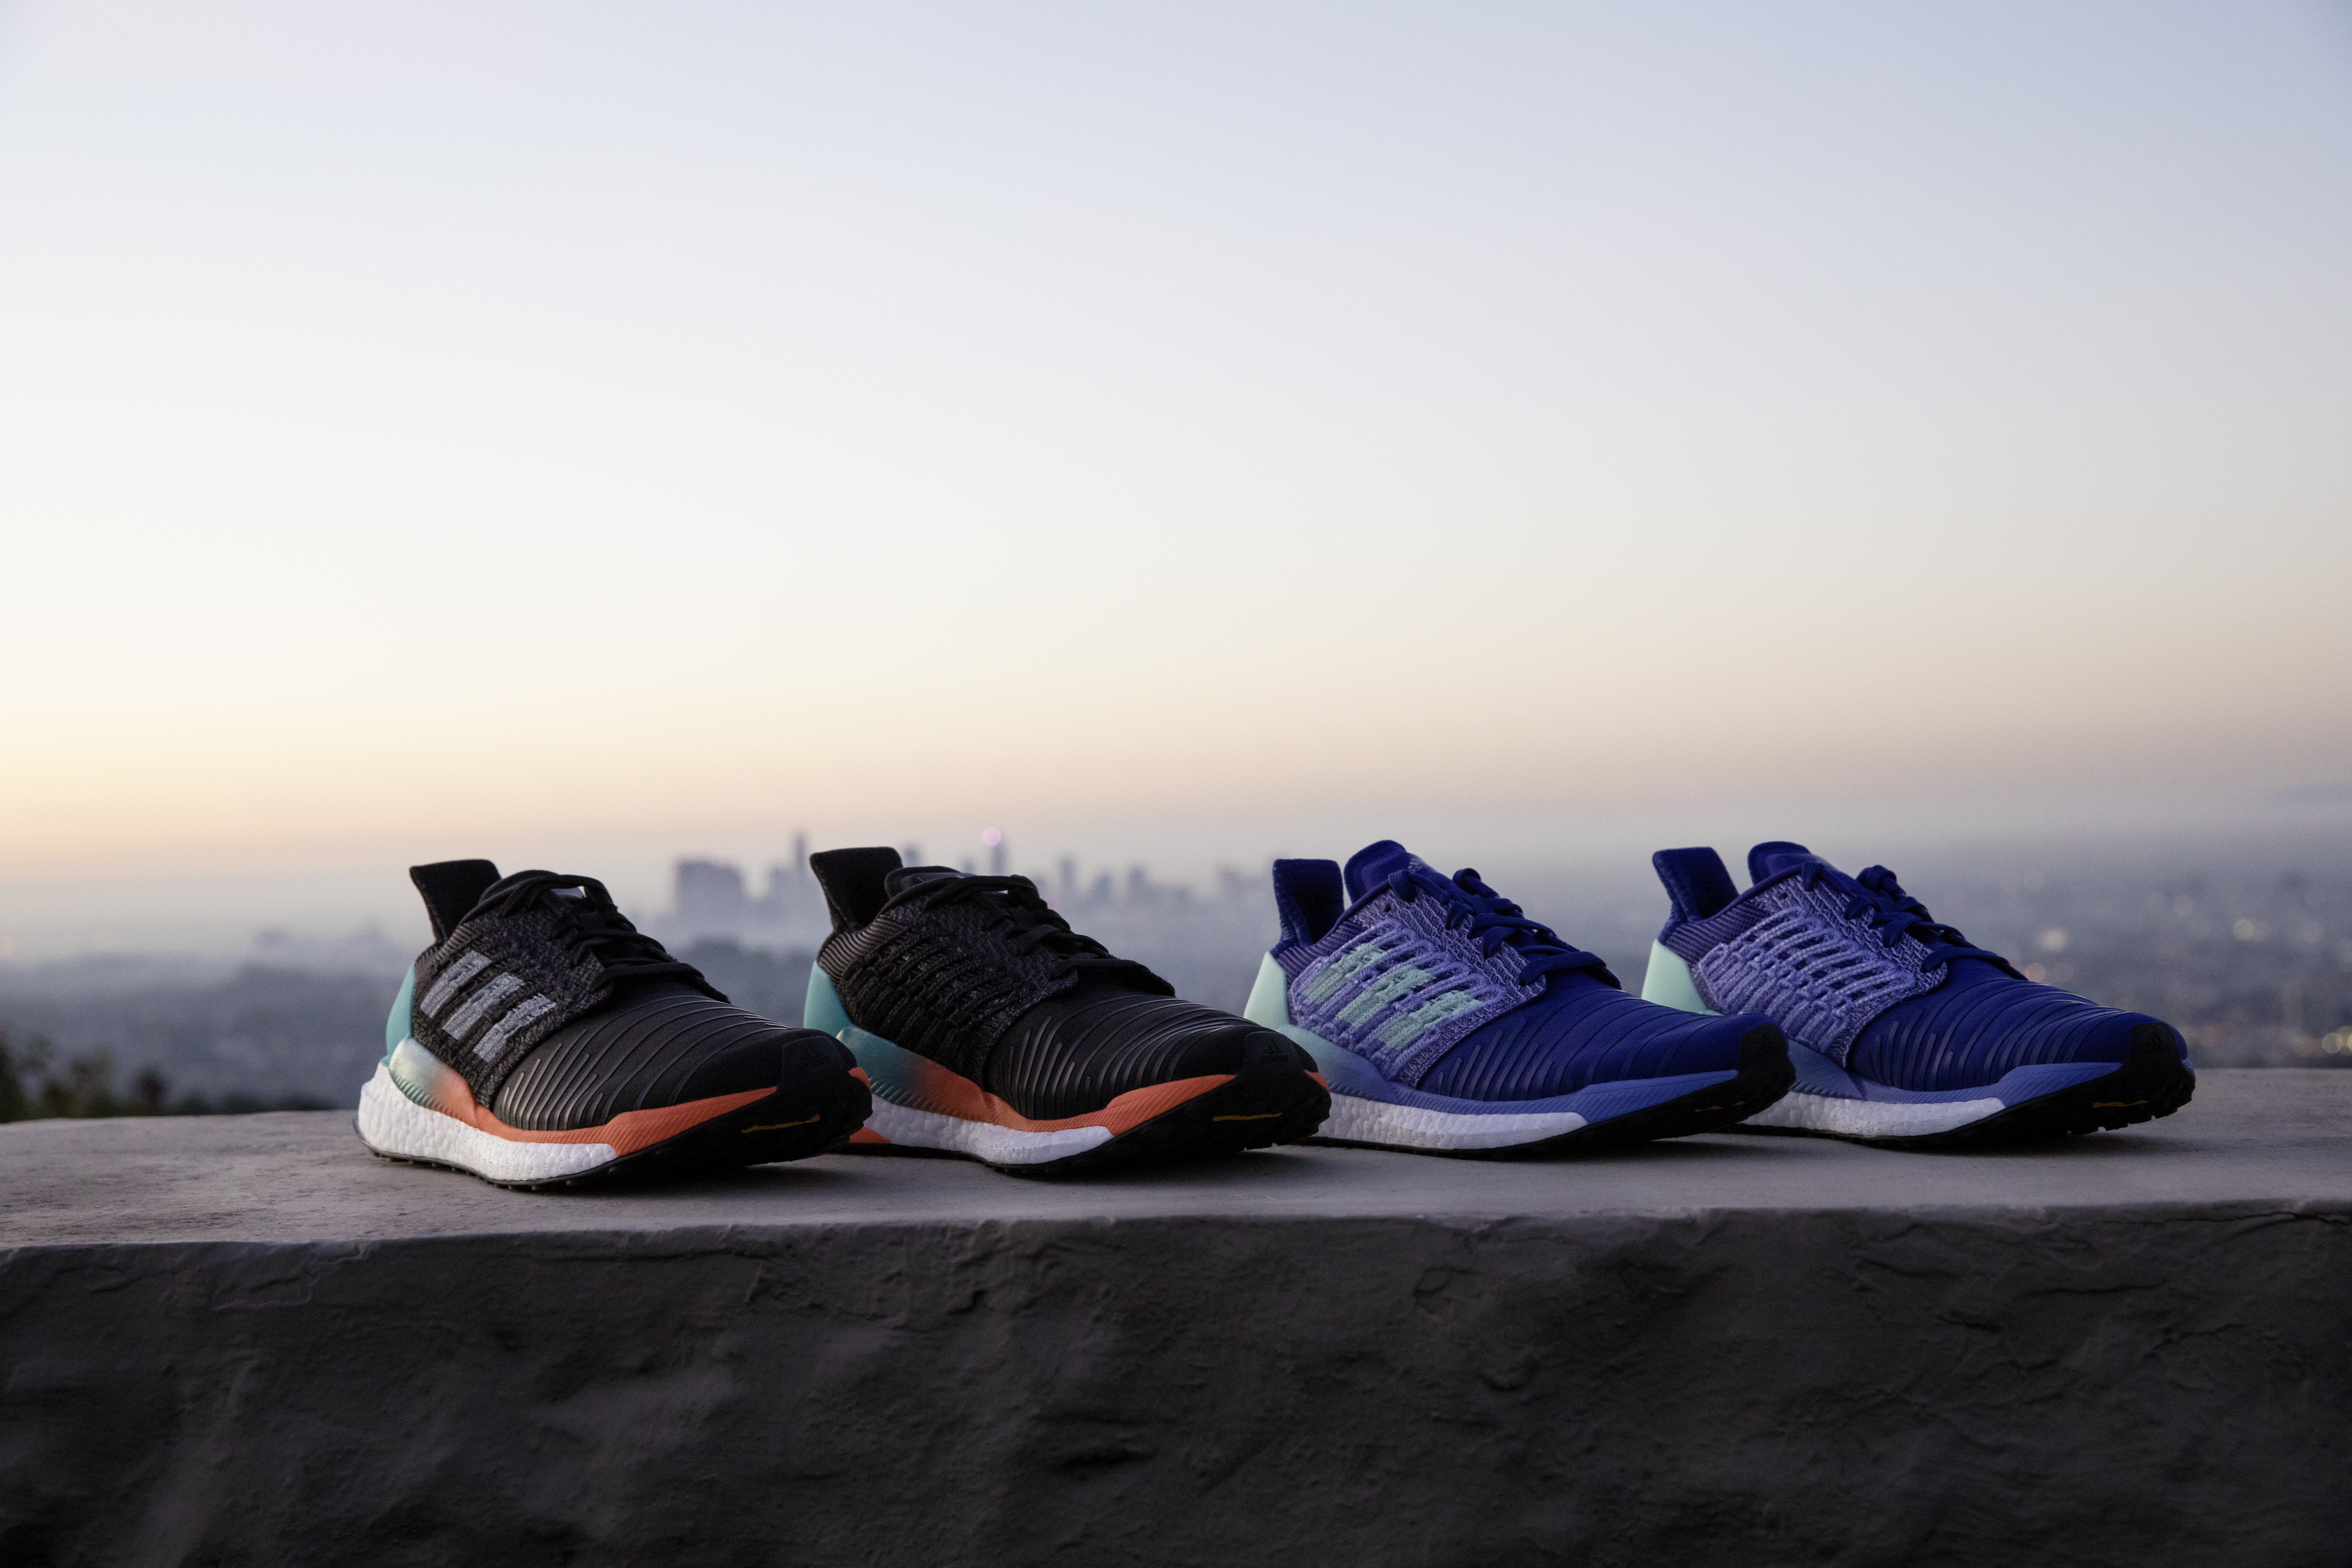 adidas_solar_beauty_shots_boost_male_female_rgb-1